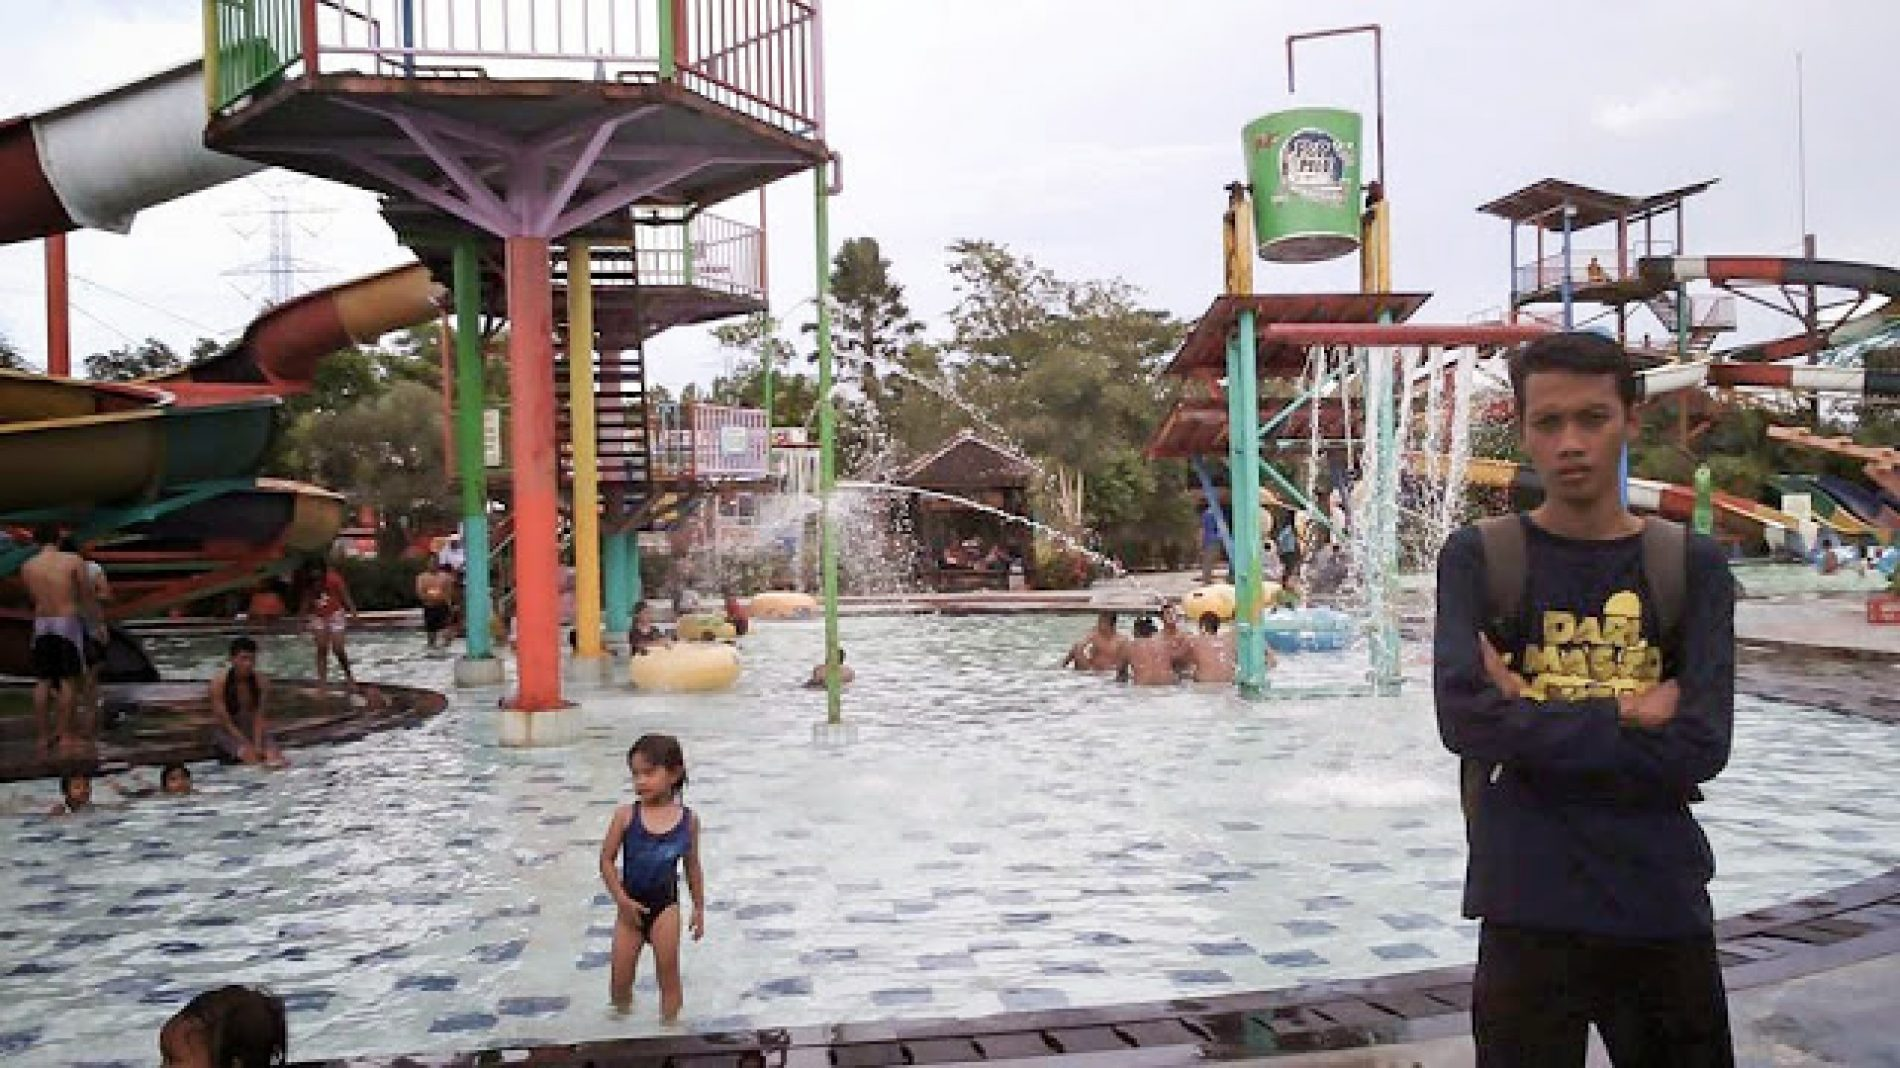 Bermain Air di Grand Puri Waterpark